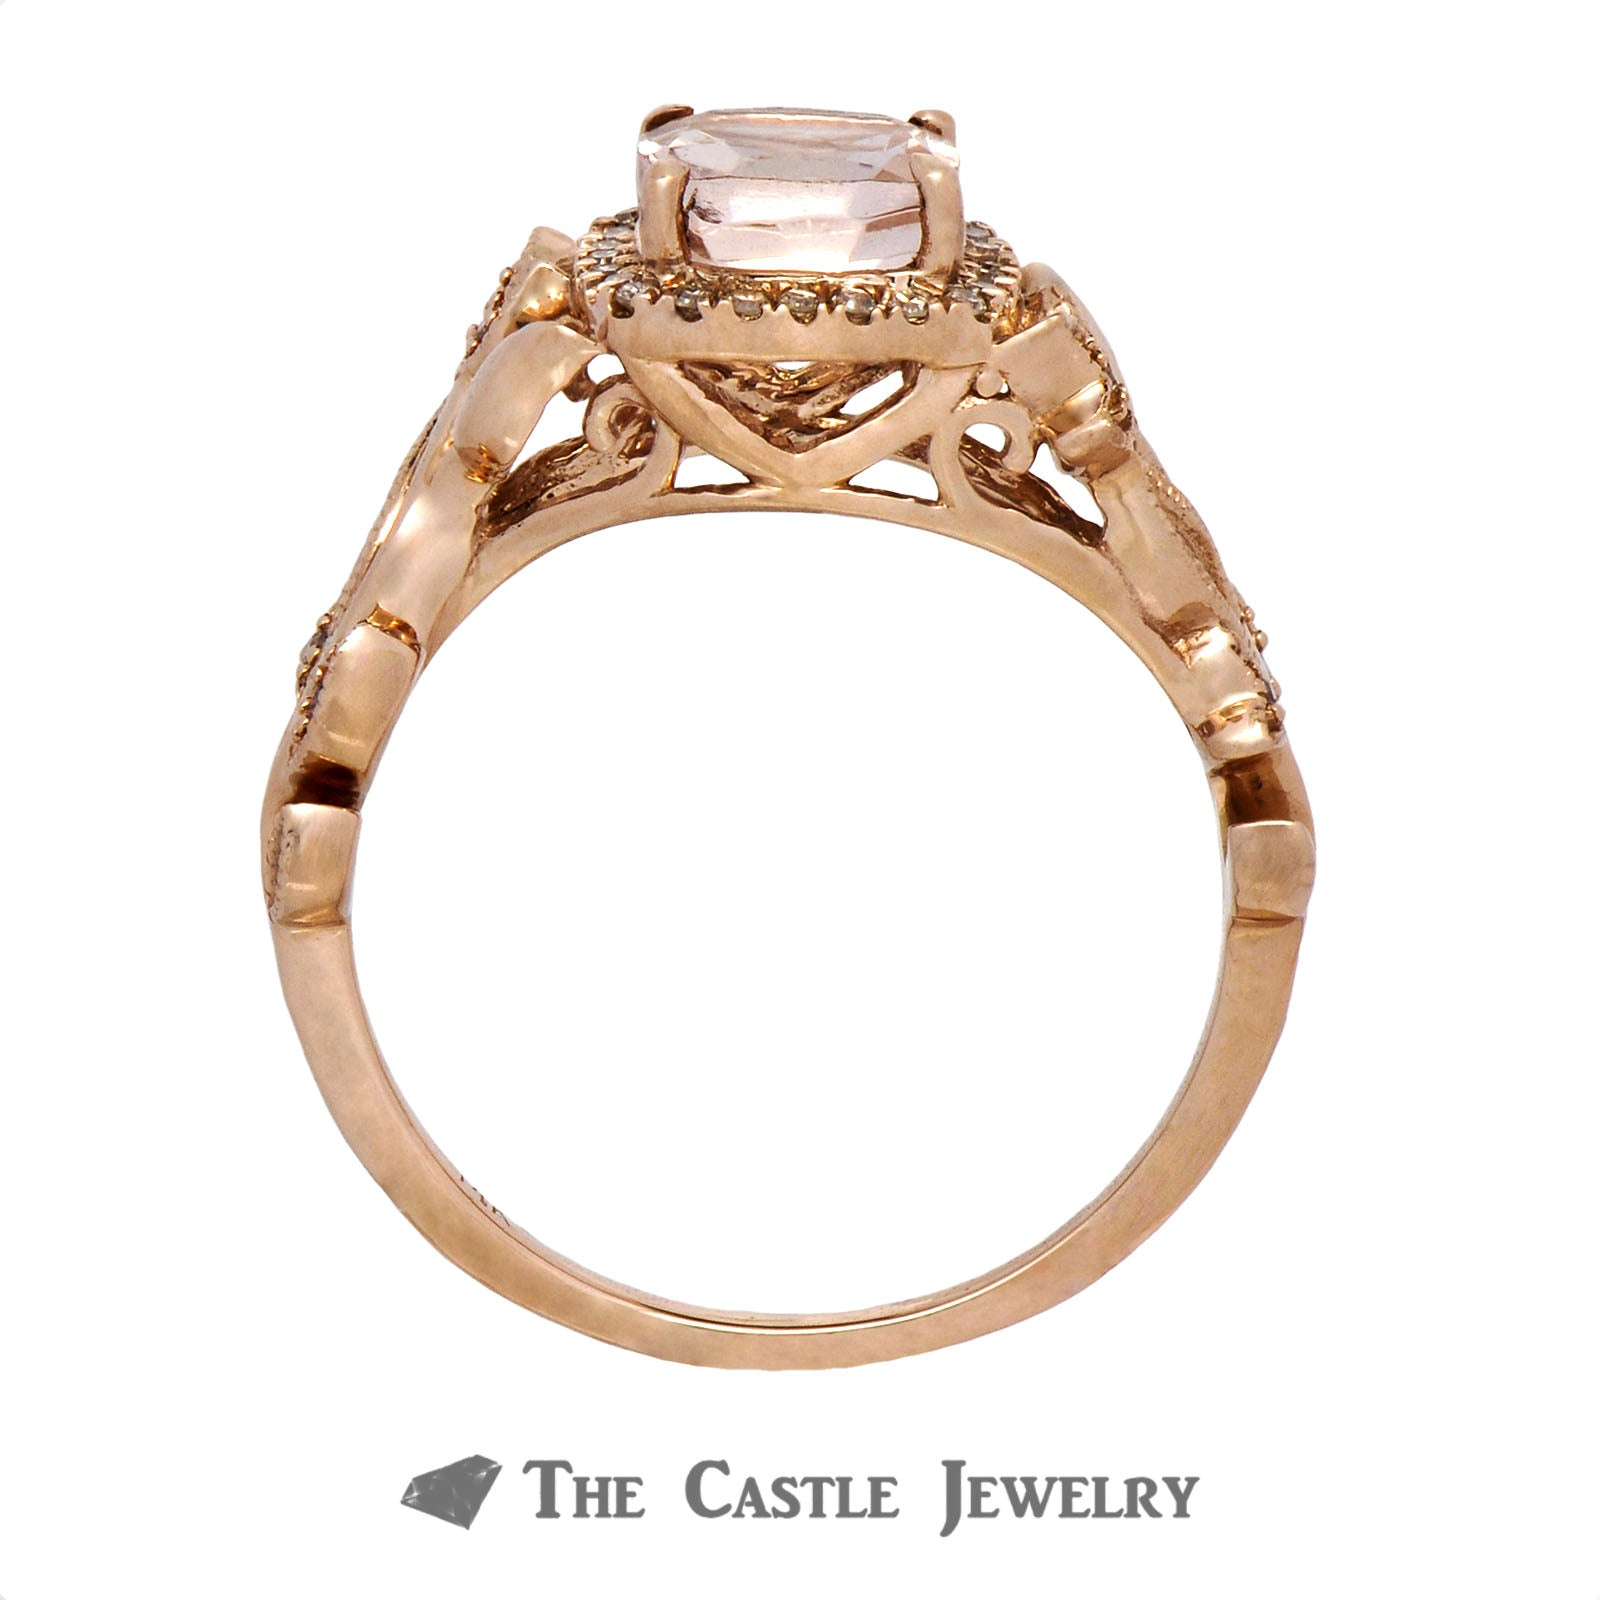 Cushion Cut Morganite Ring with Diamond Halo & Flower Design Rose Gold Mounting-1